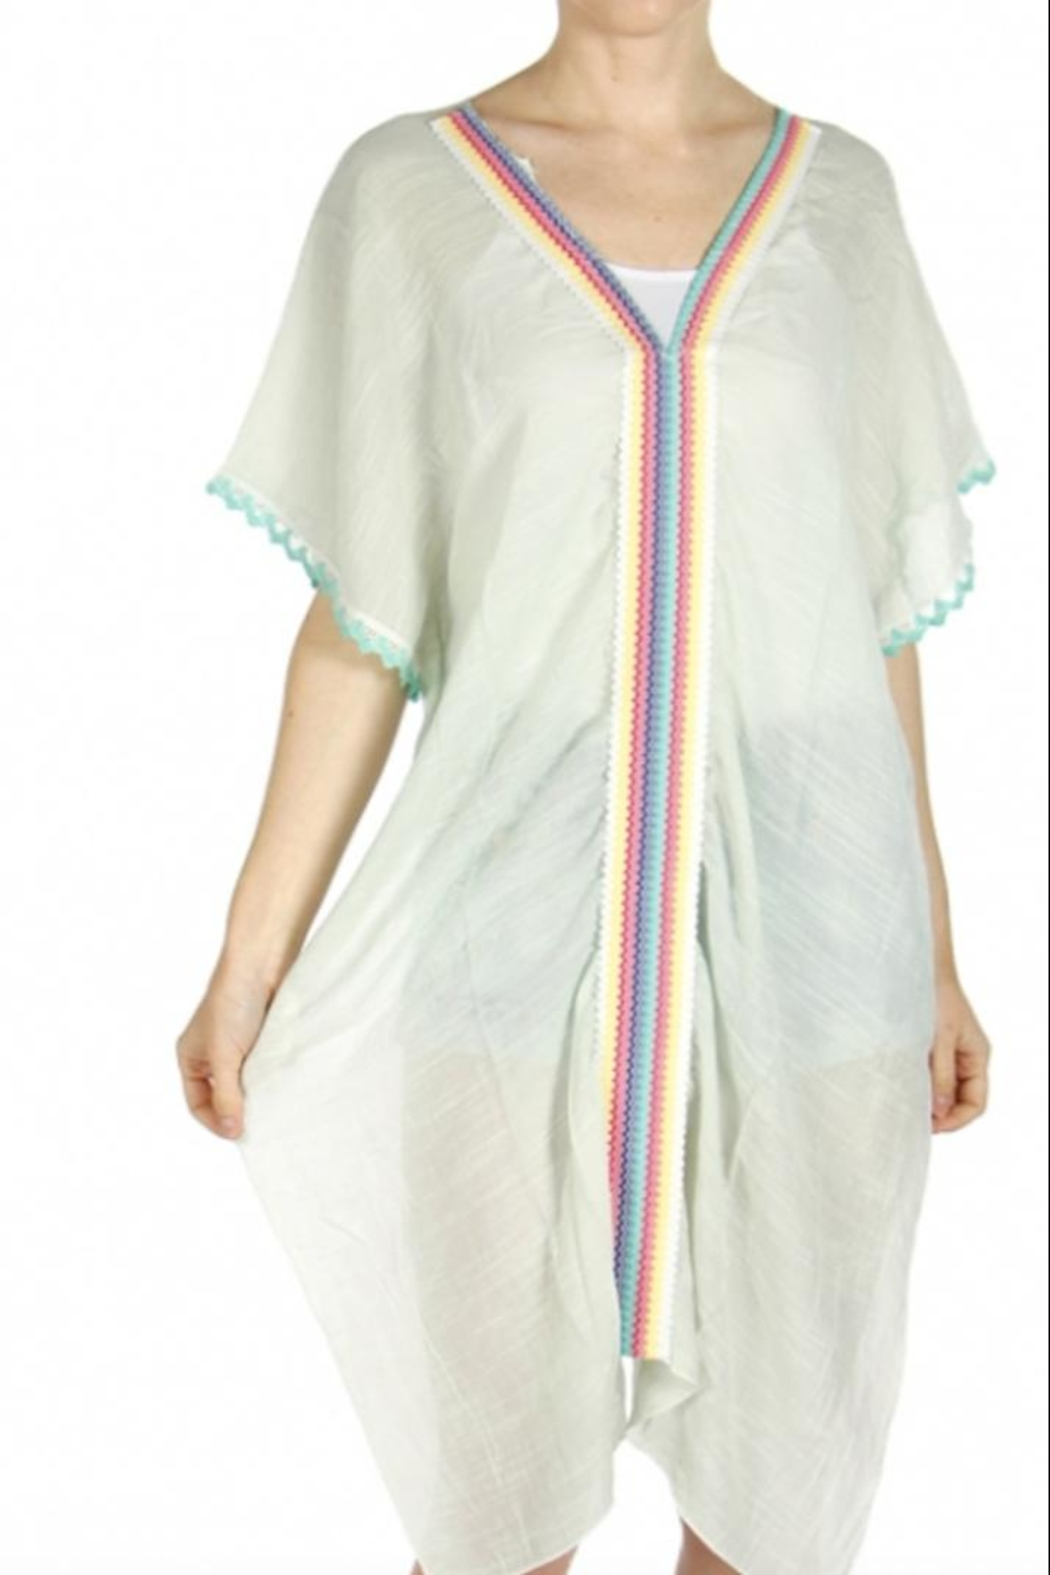 Anne Woodman Embroidered Beach Caftan - Main Image